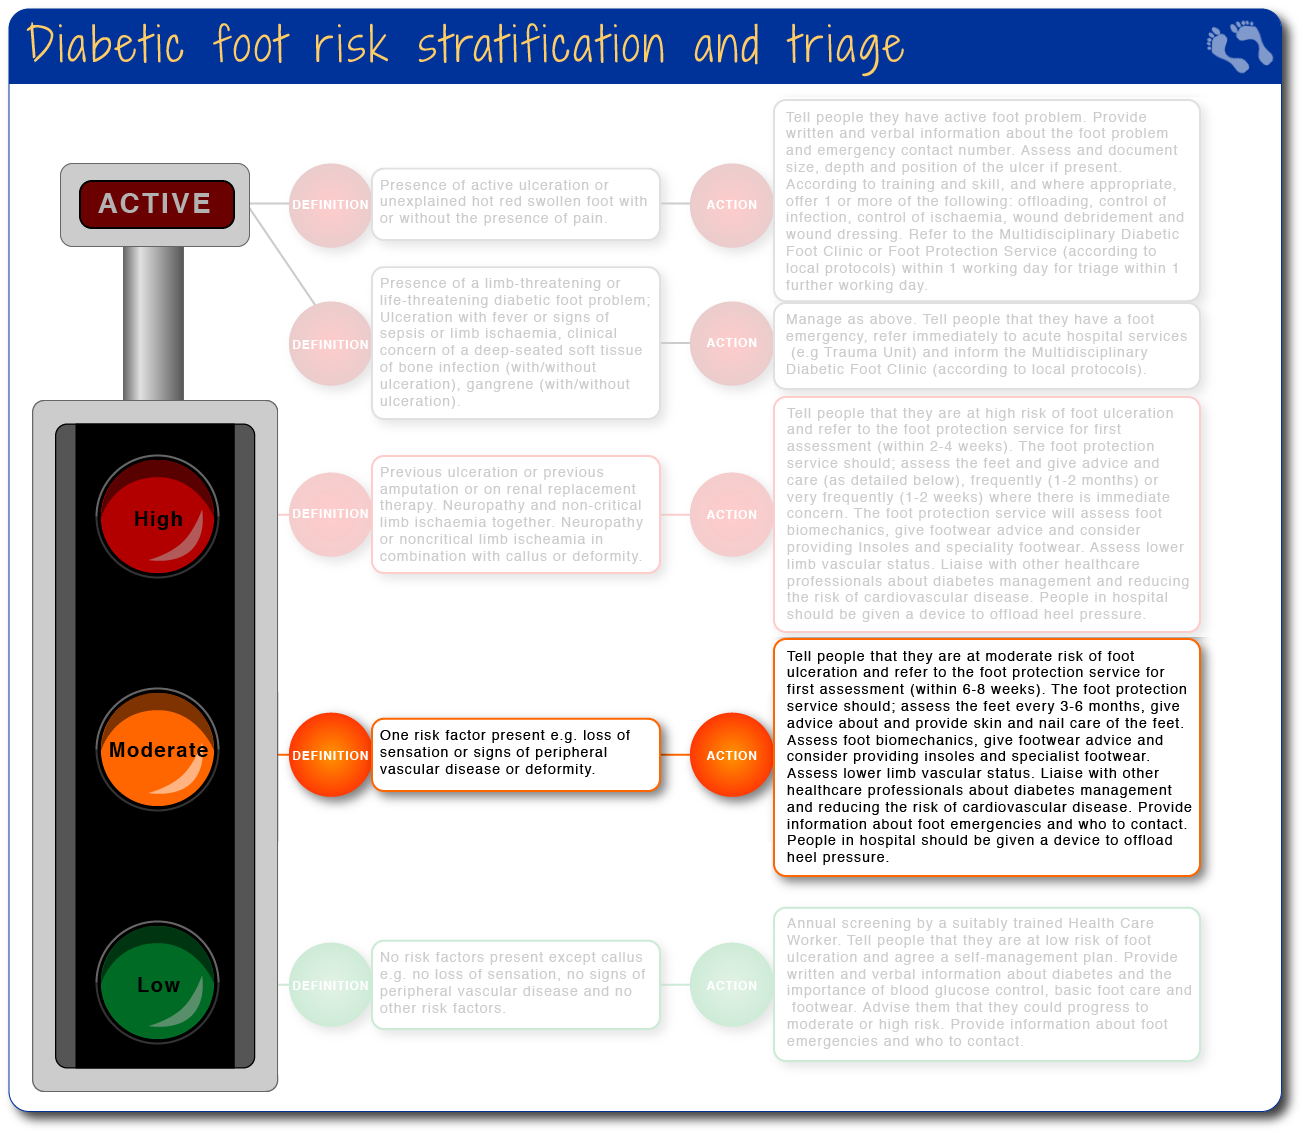 Diabetic foot risk stratification and triage - moderate risk